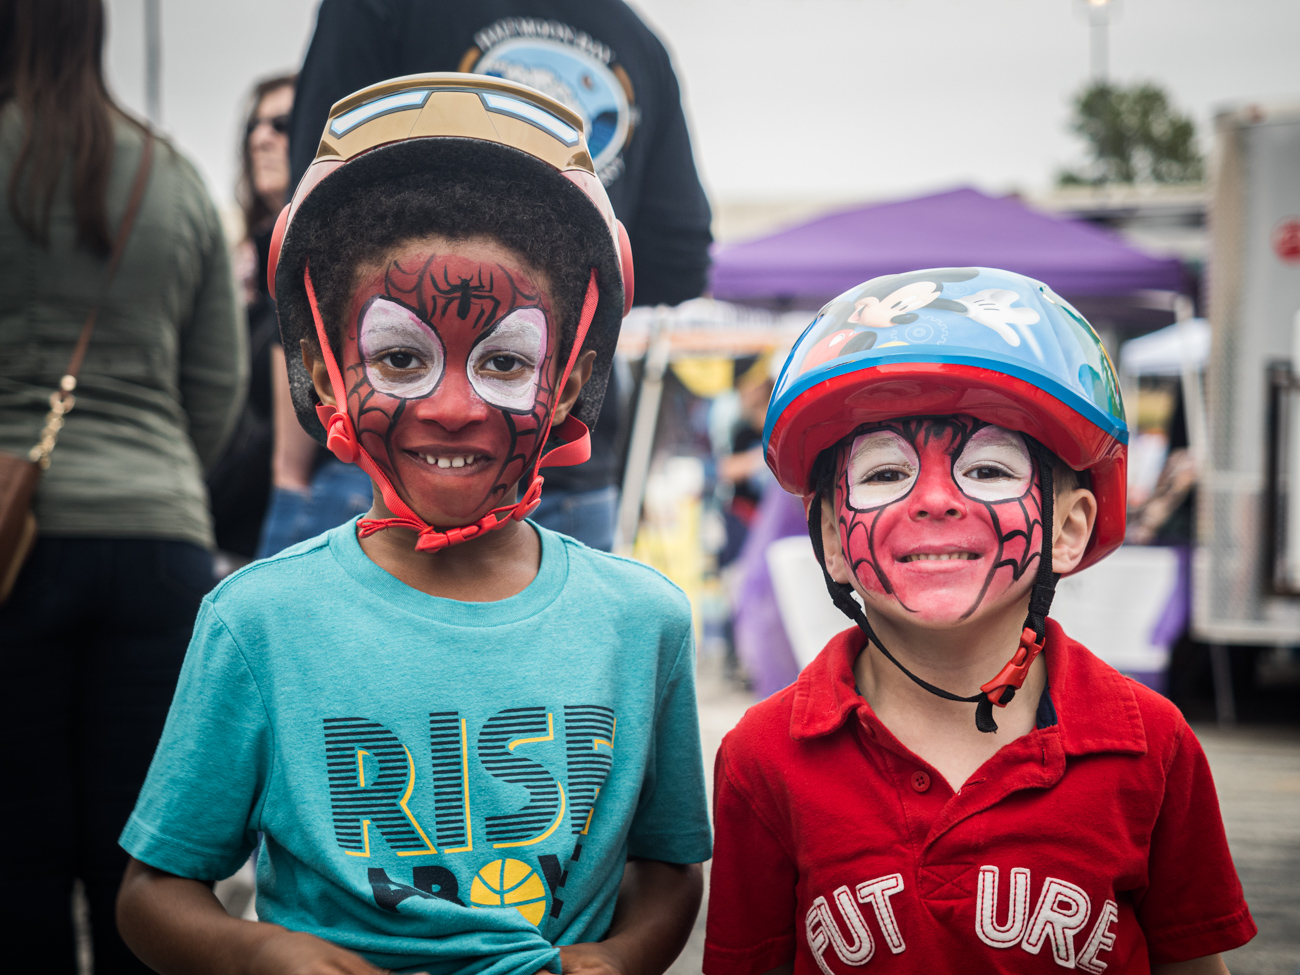 Two children with painted faces wearing bike helmets at Martial arts demonstration at Burtonsville Placemaking Festival